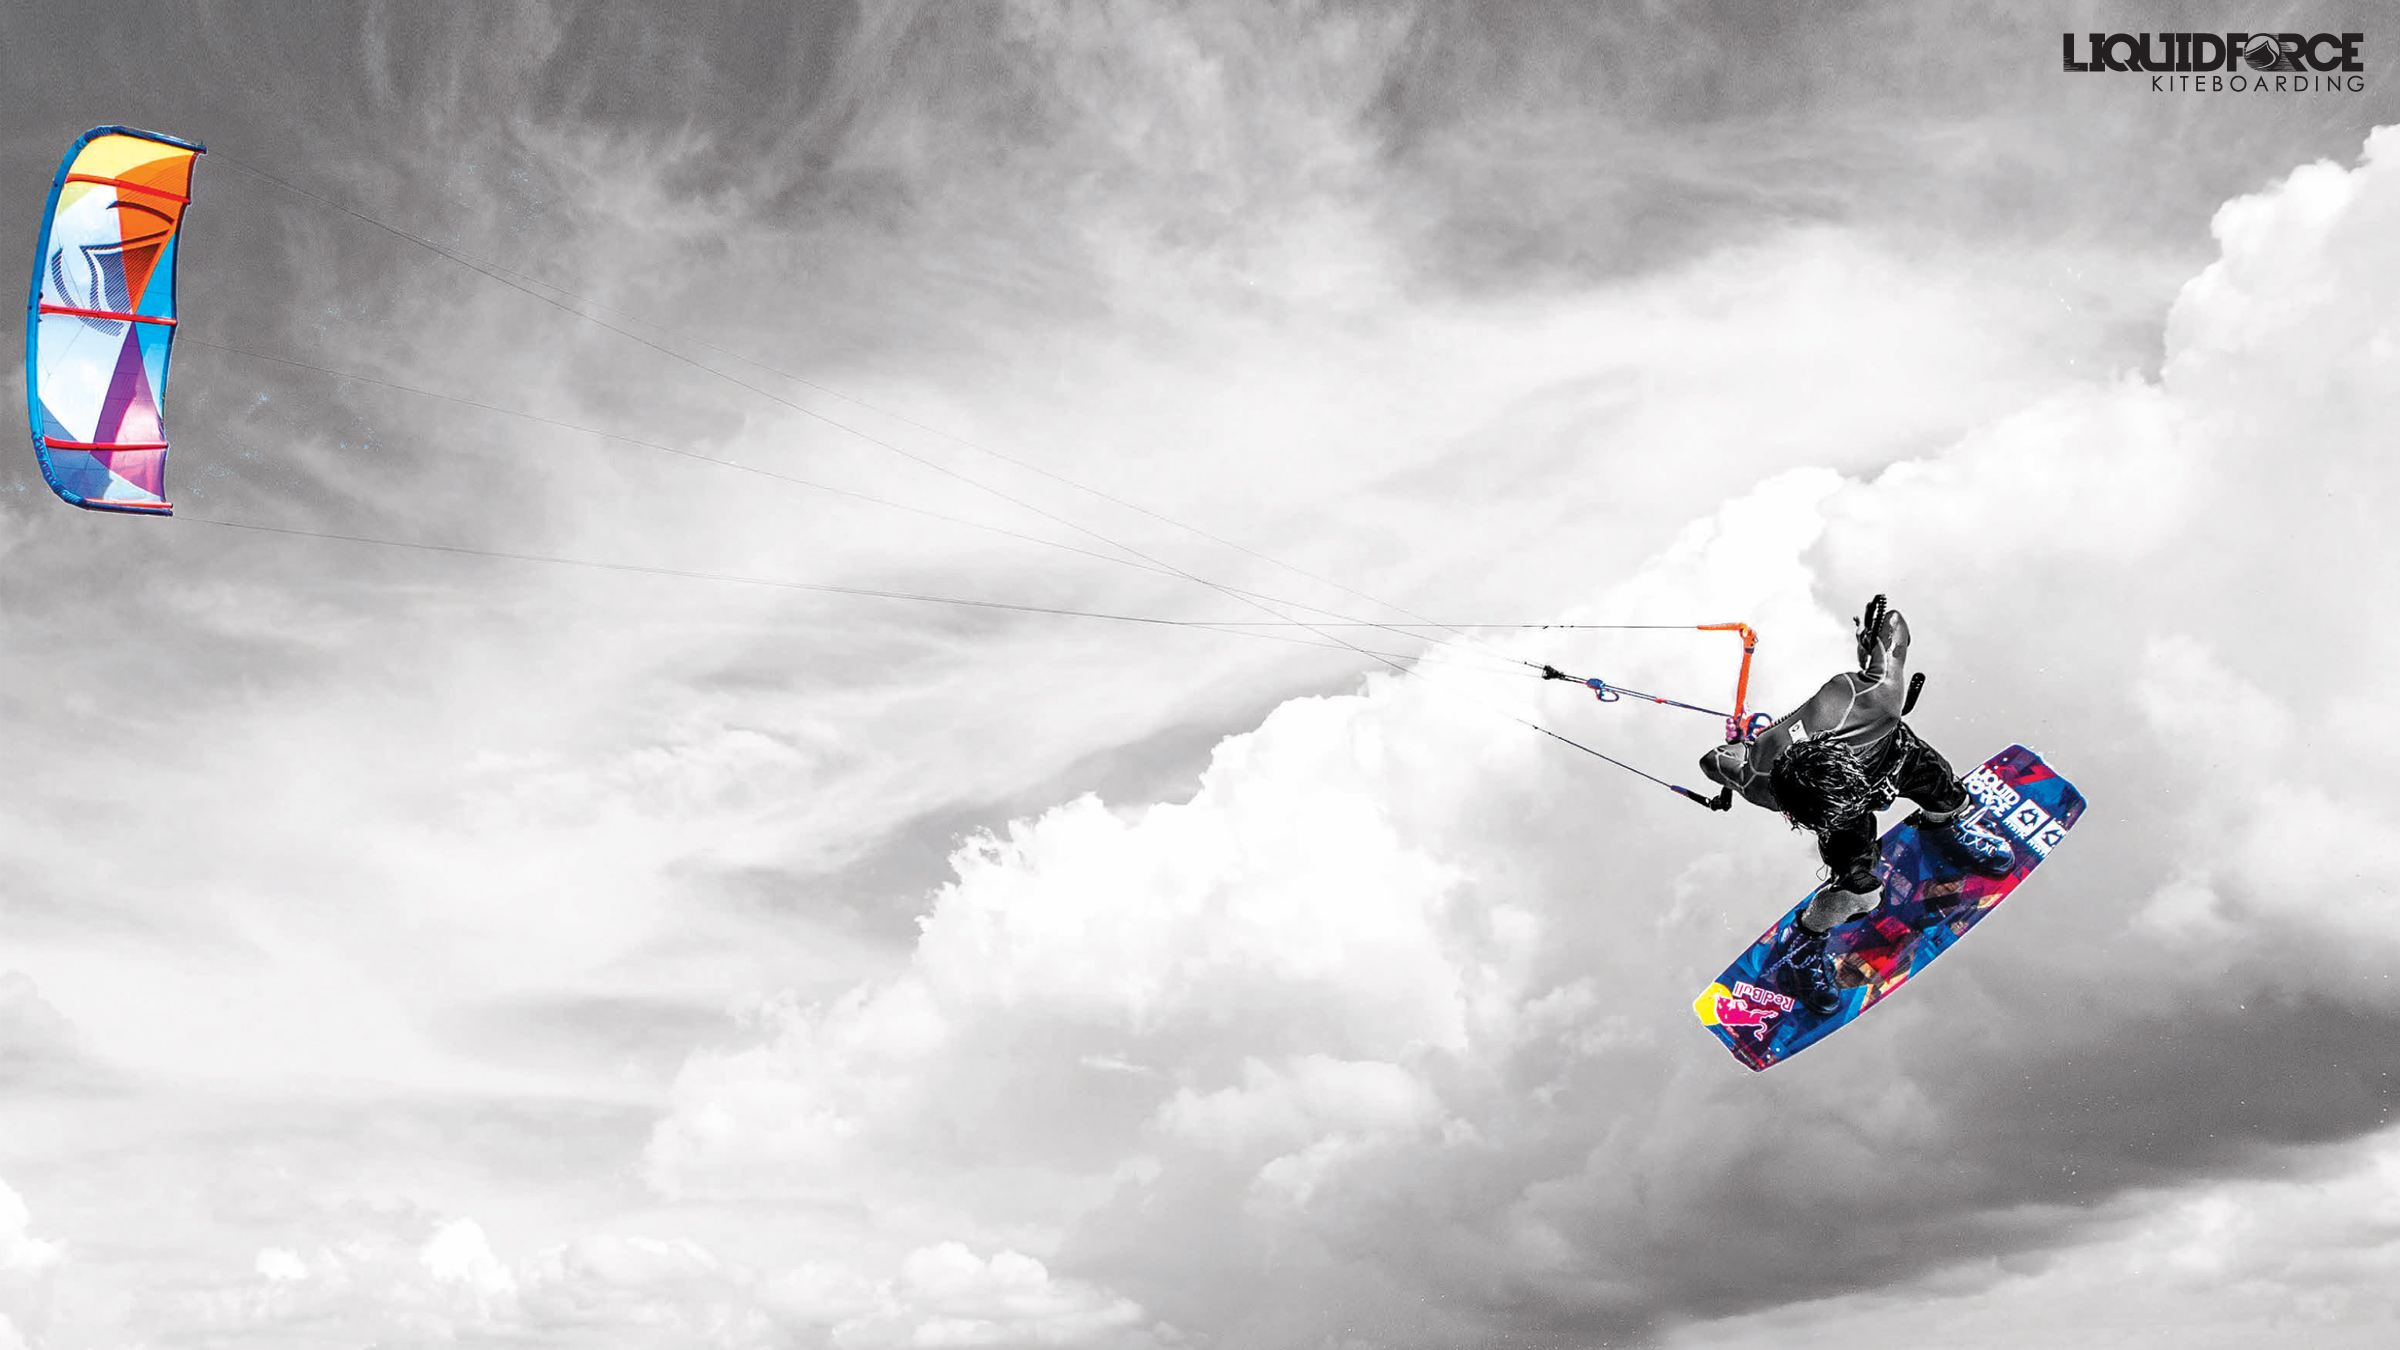 kitesurf wallpaper image - Christophe Tack on the 2015 Liquid Force HIFI-X kite and element kiteboard during a handle pass  - in resolution: High Definition - HD 16:9 2400 X 1350